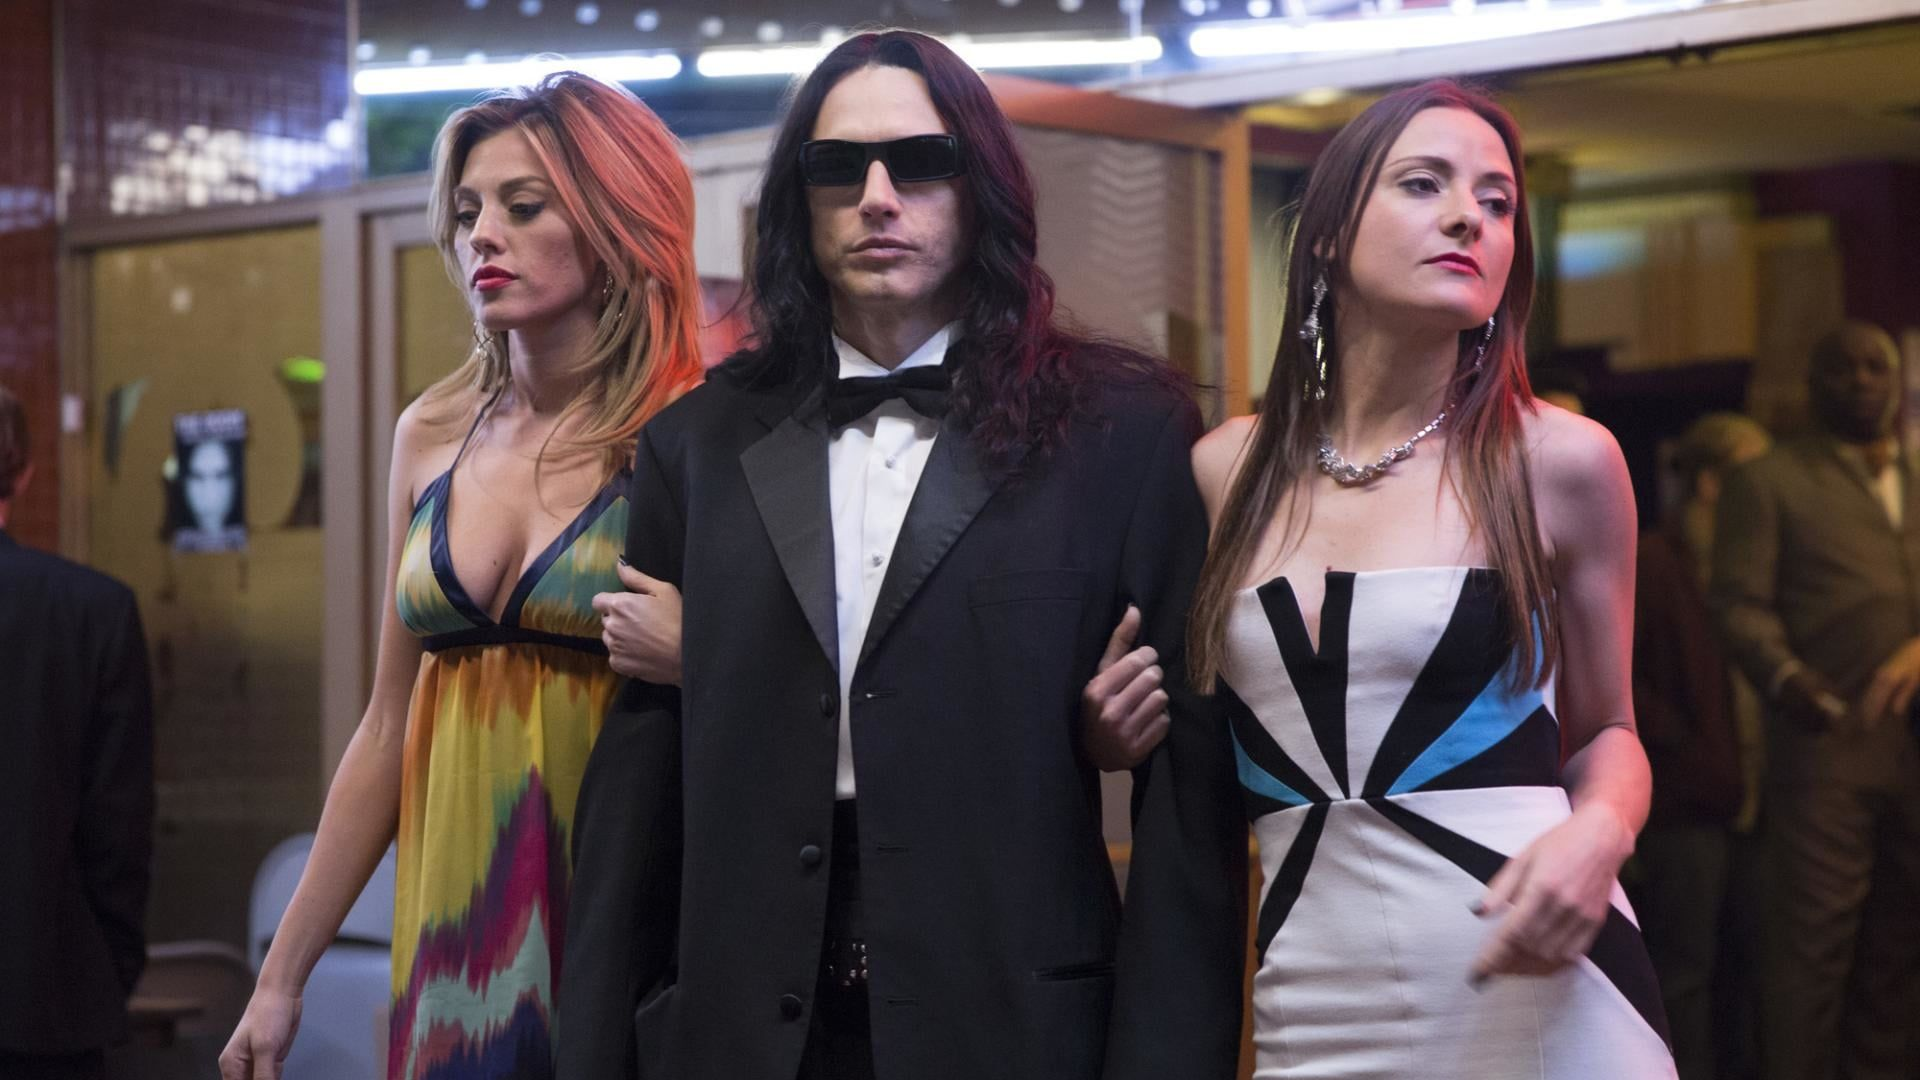 The Disaster Artist (2017) Full Movie (BluRay Quality